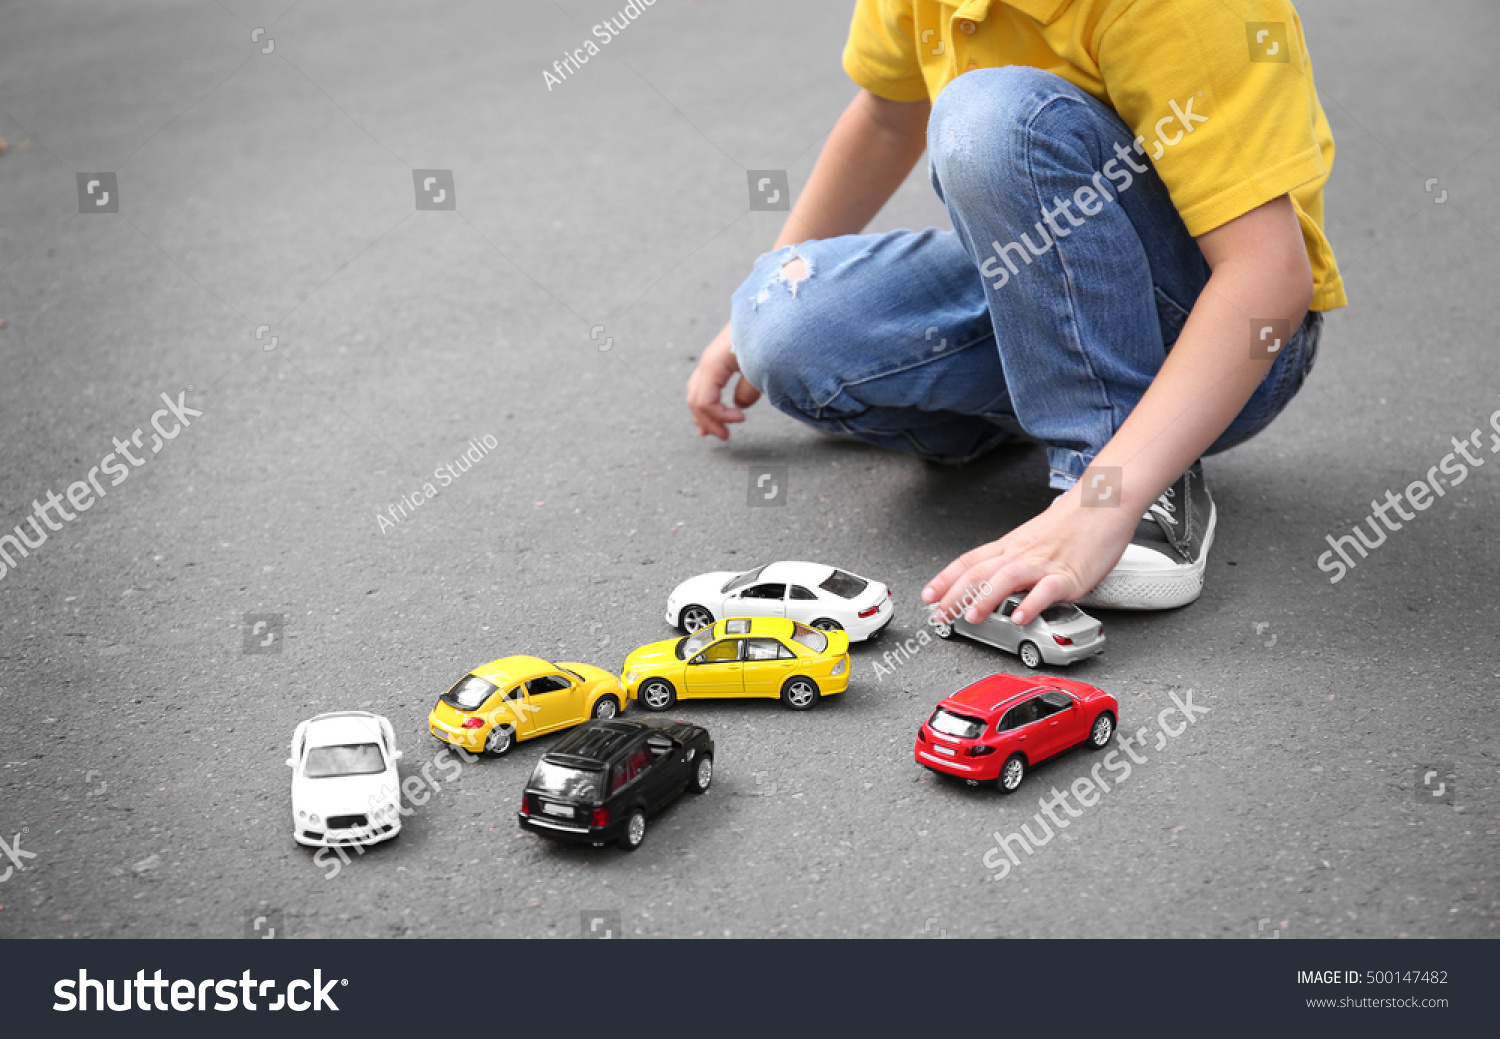 Hunting Toys For Little Boys : Little boy playing with toy cars outdoor stock photo